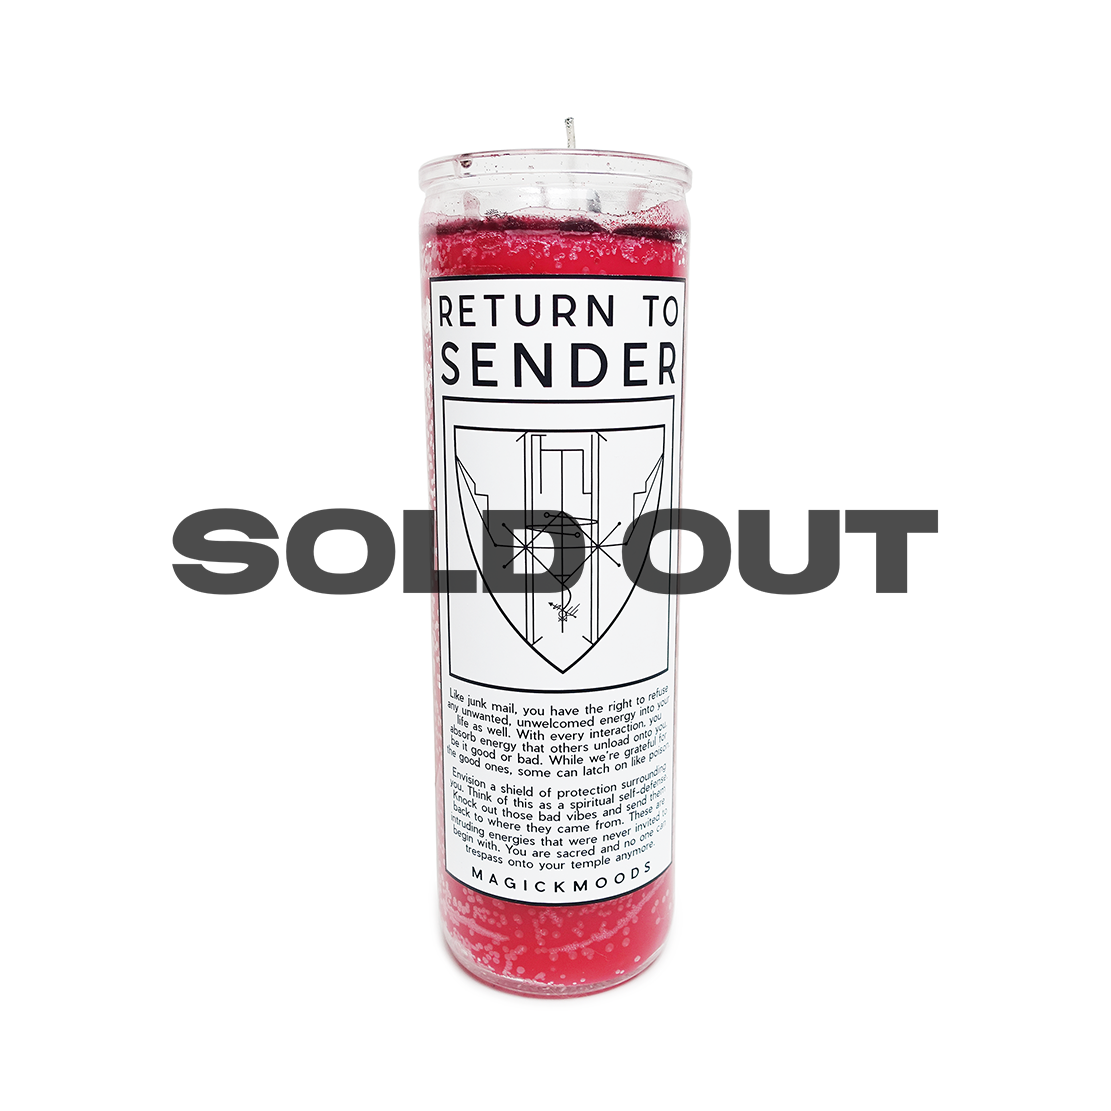 Return To Sender 7-Day Meditation Candle - PREORDER - Ships by 12/15